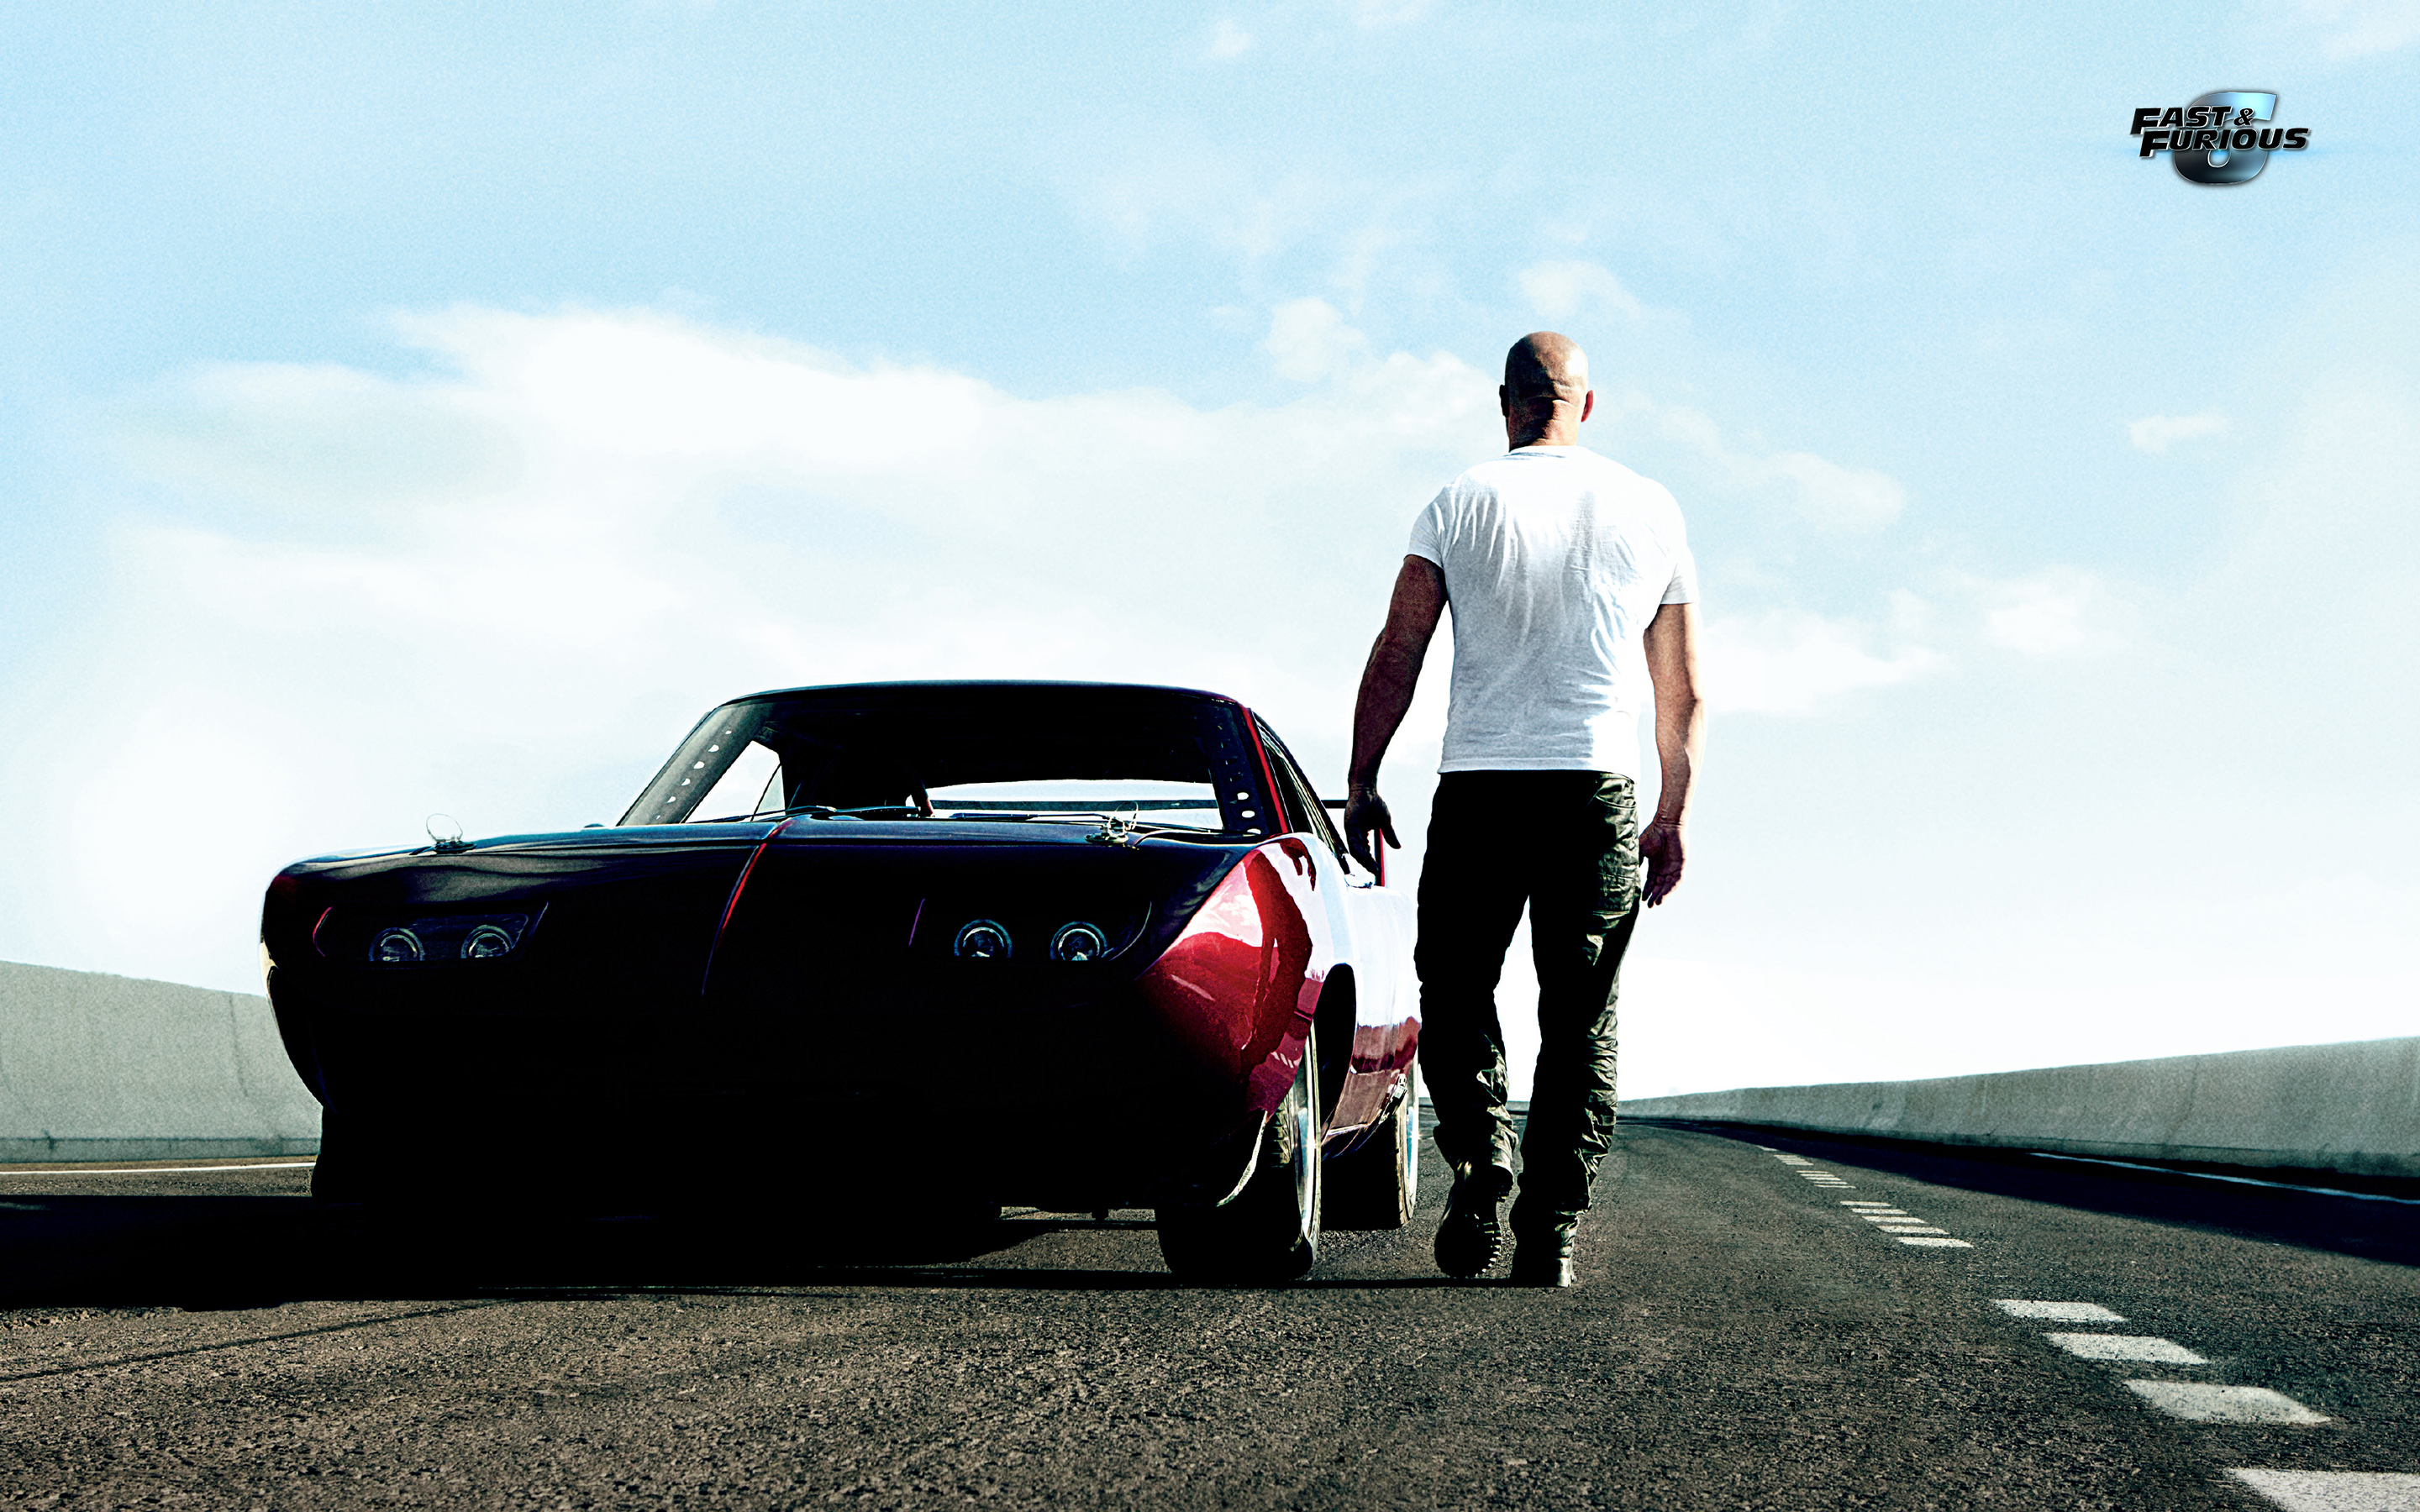 Fast & Furious 6 Computer Wallpapers, Desktop Backgrounds ...